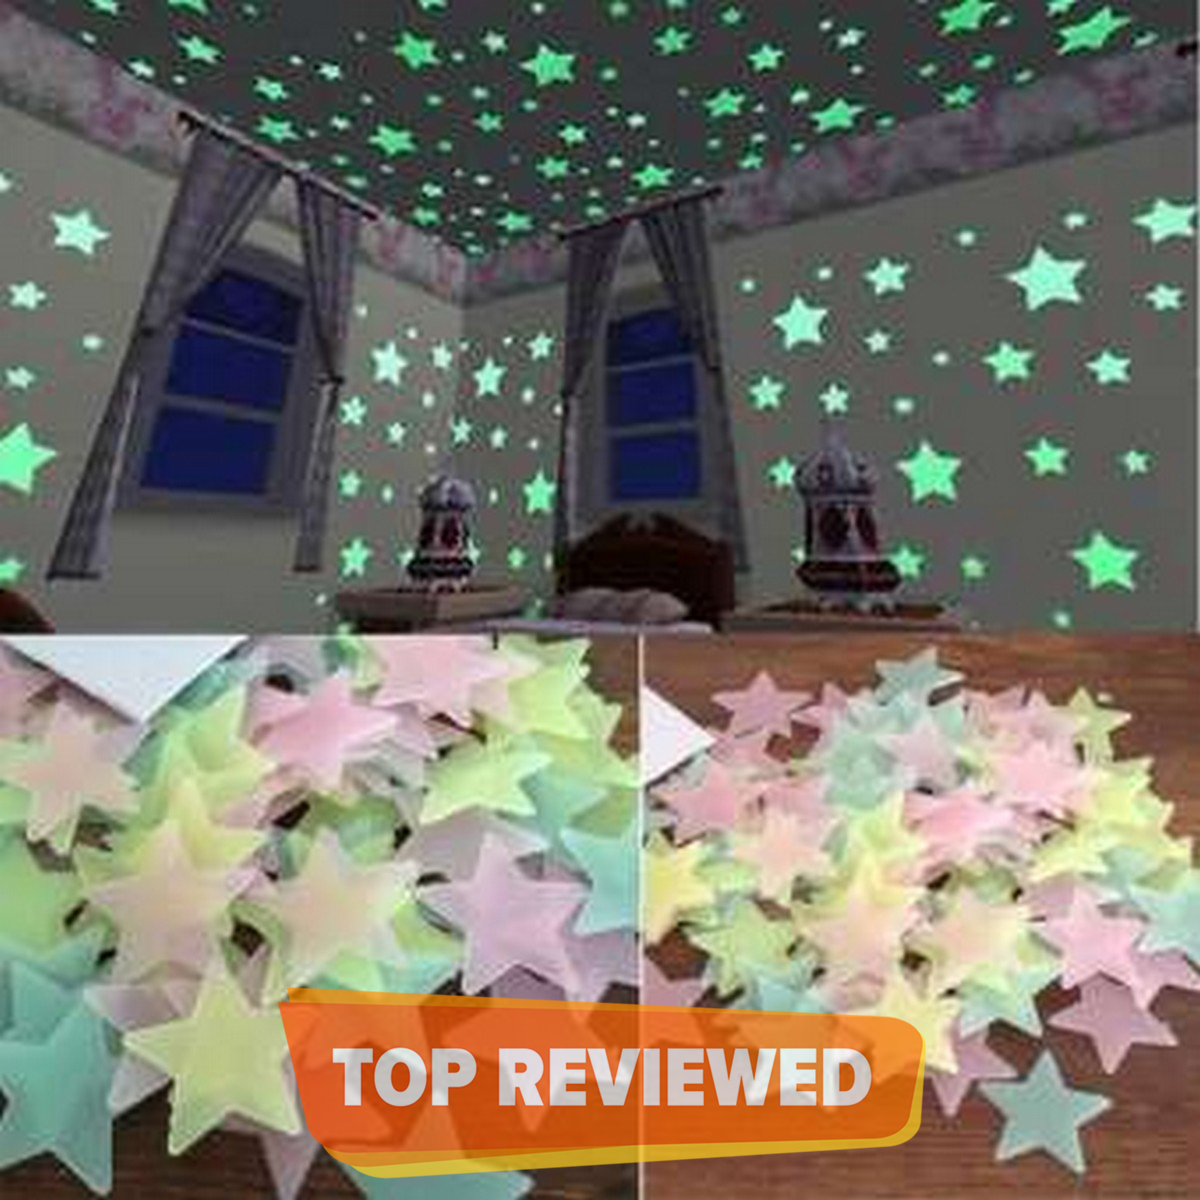 Pack of 100 - 3D Stars Glow In The Dark Wall Stickers Luminous Fluorescent Wall Stickers For Kids Baby Room Bedroom Ceiling Home Decor